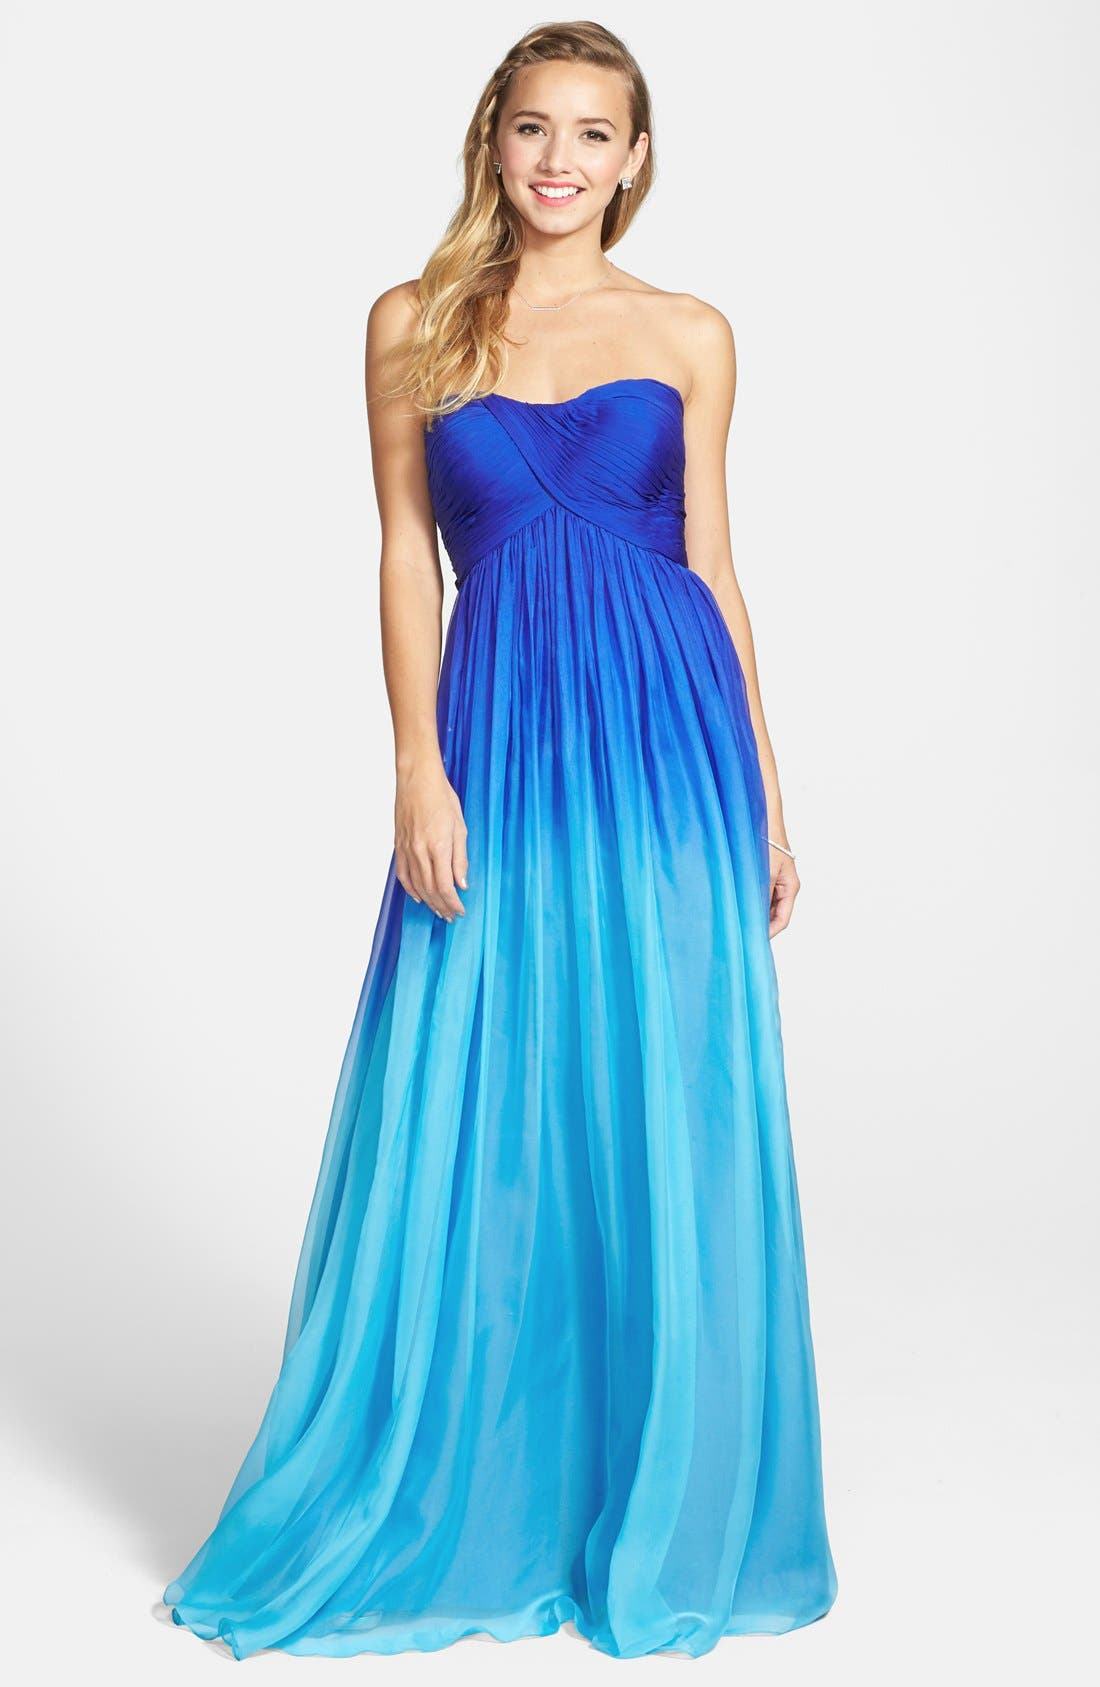 Ruched Ombré Chiffon Strapless Gown,                         Main,                         color, 440